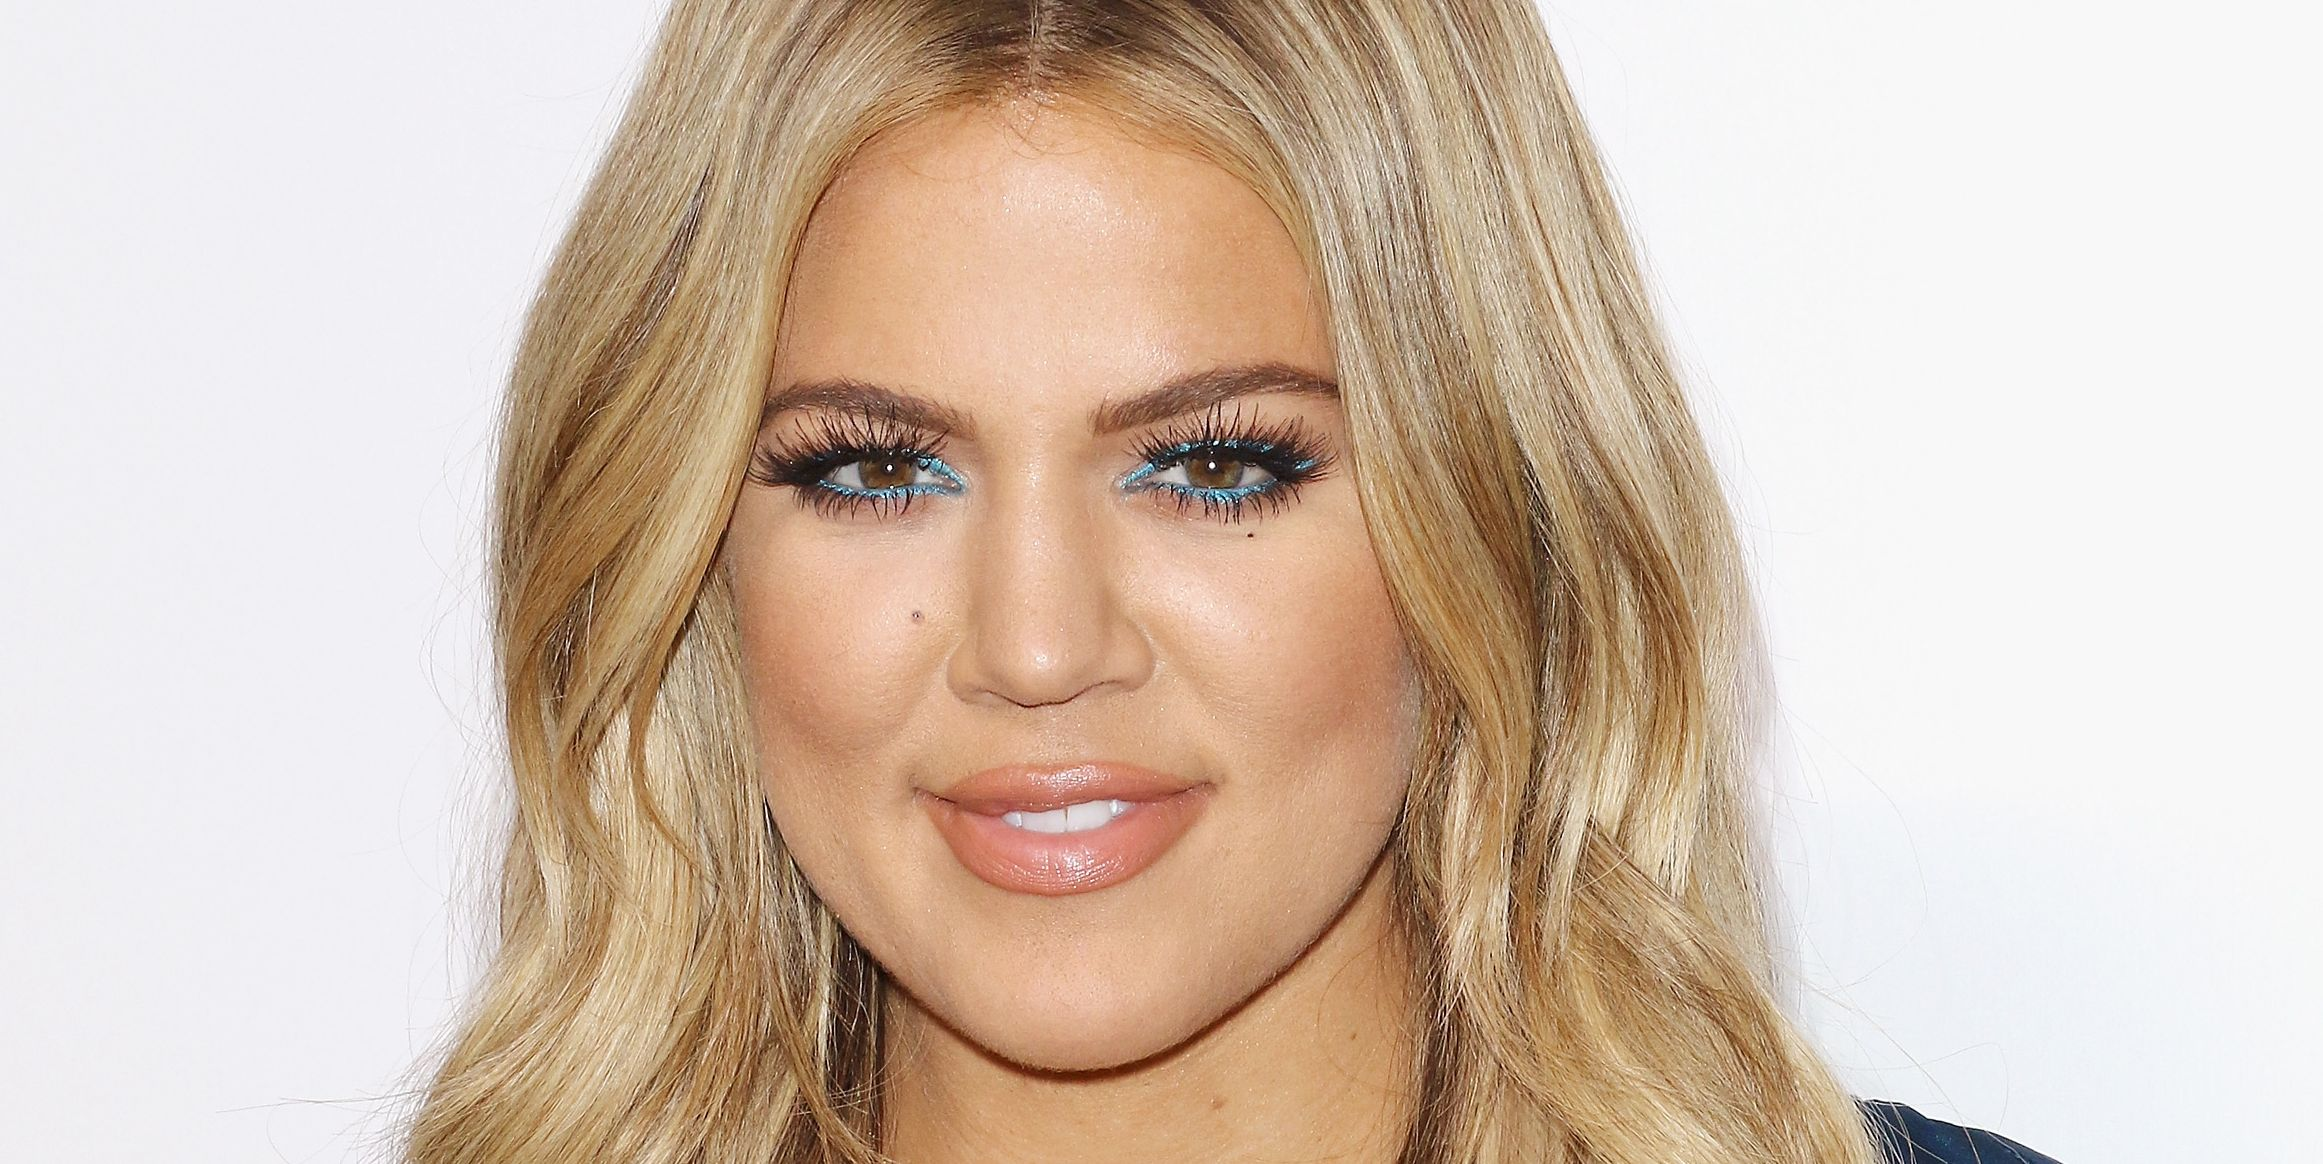 Khloe Kardashian gets deep about love, fans question whether it's about Tristan Thompson